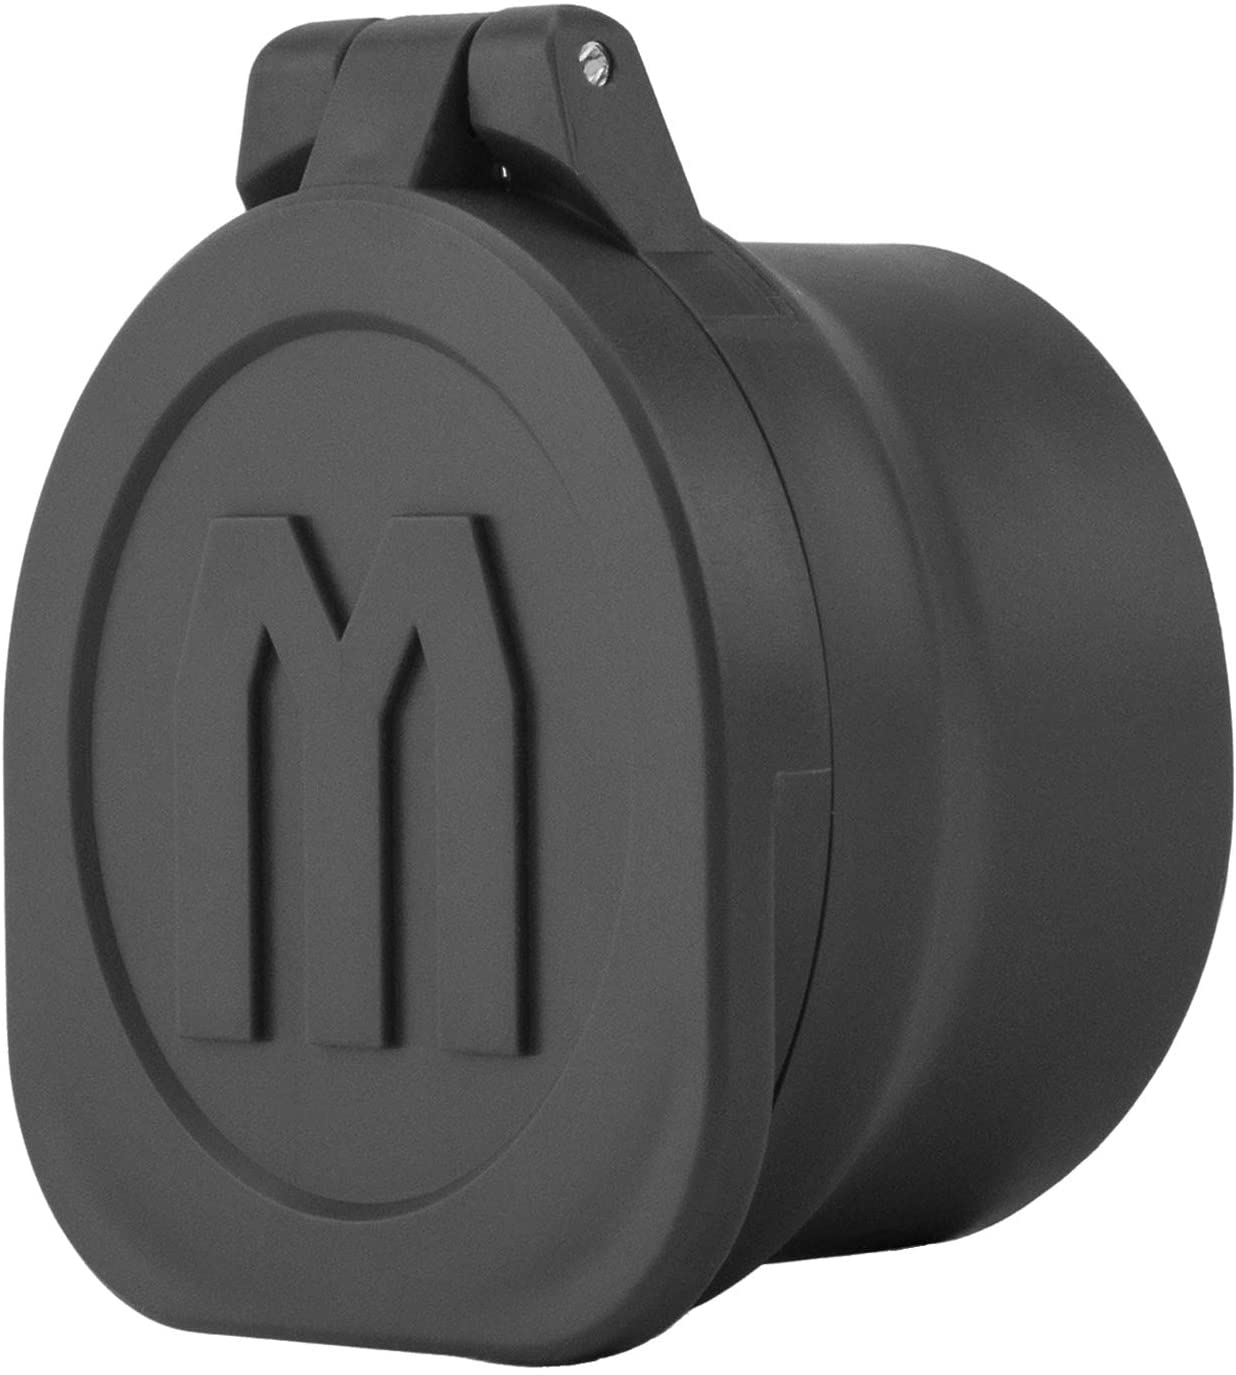 Monstrum Rubberized Flip-Up Rifle Covers Direct New York Mall store Lens Scope